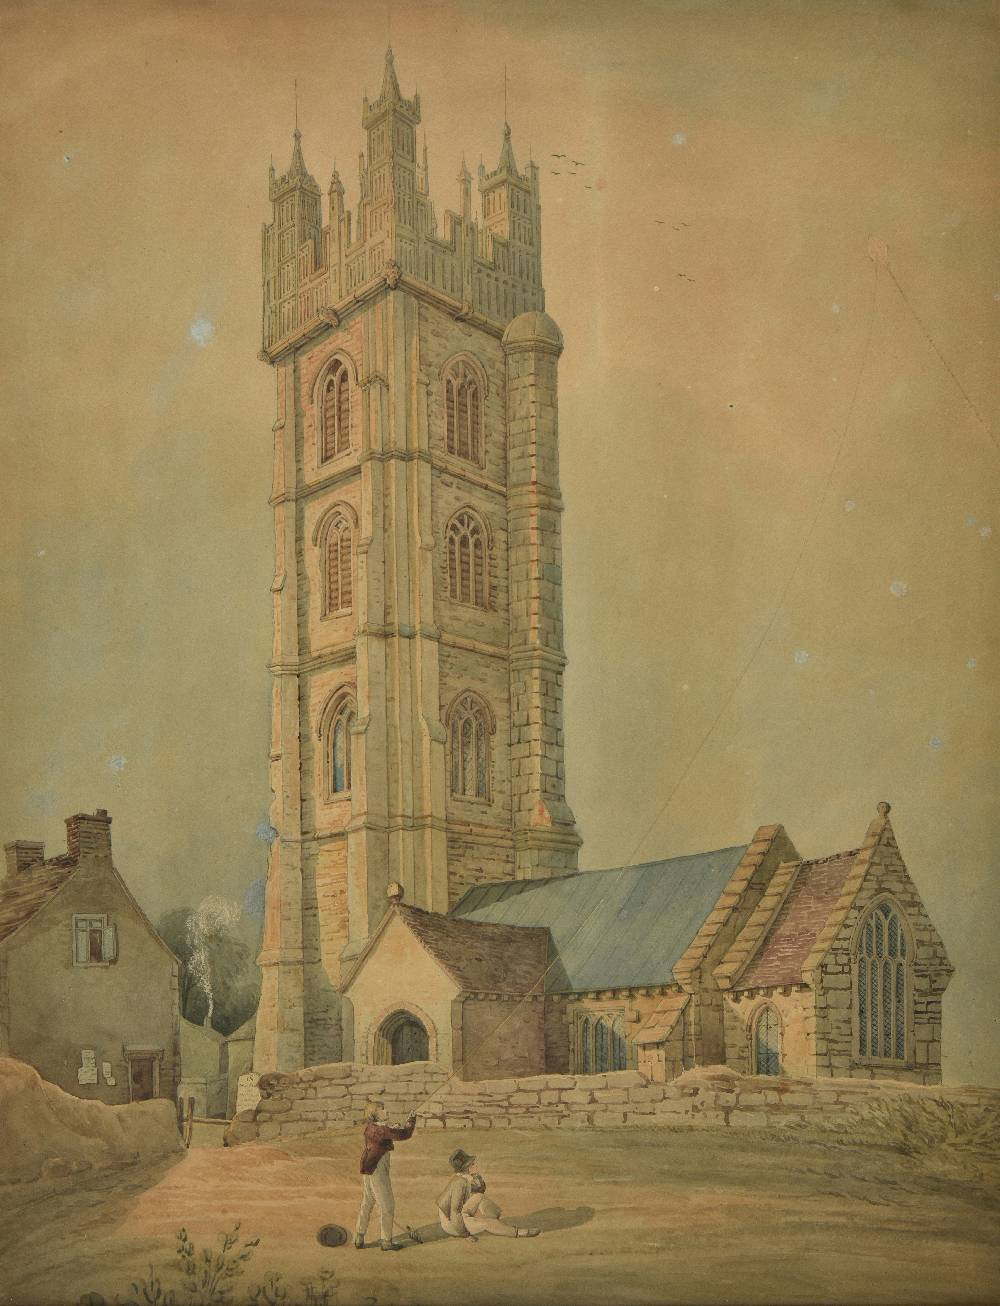 Lot 58 - *Bristol. Dundry Church, circa 1800-1810, watercolour on wove, showing two boys flying a kite by